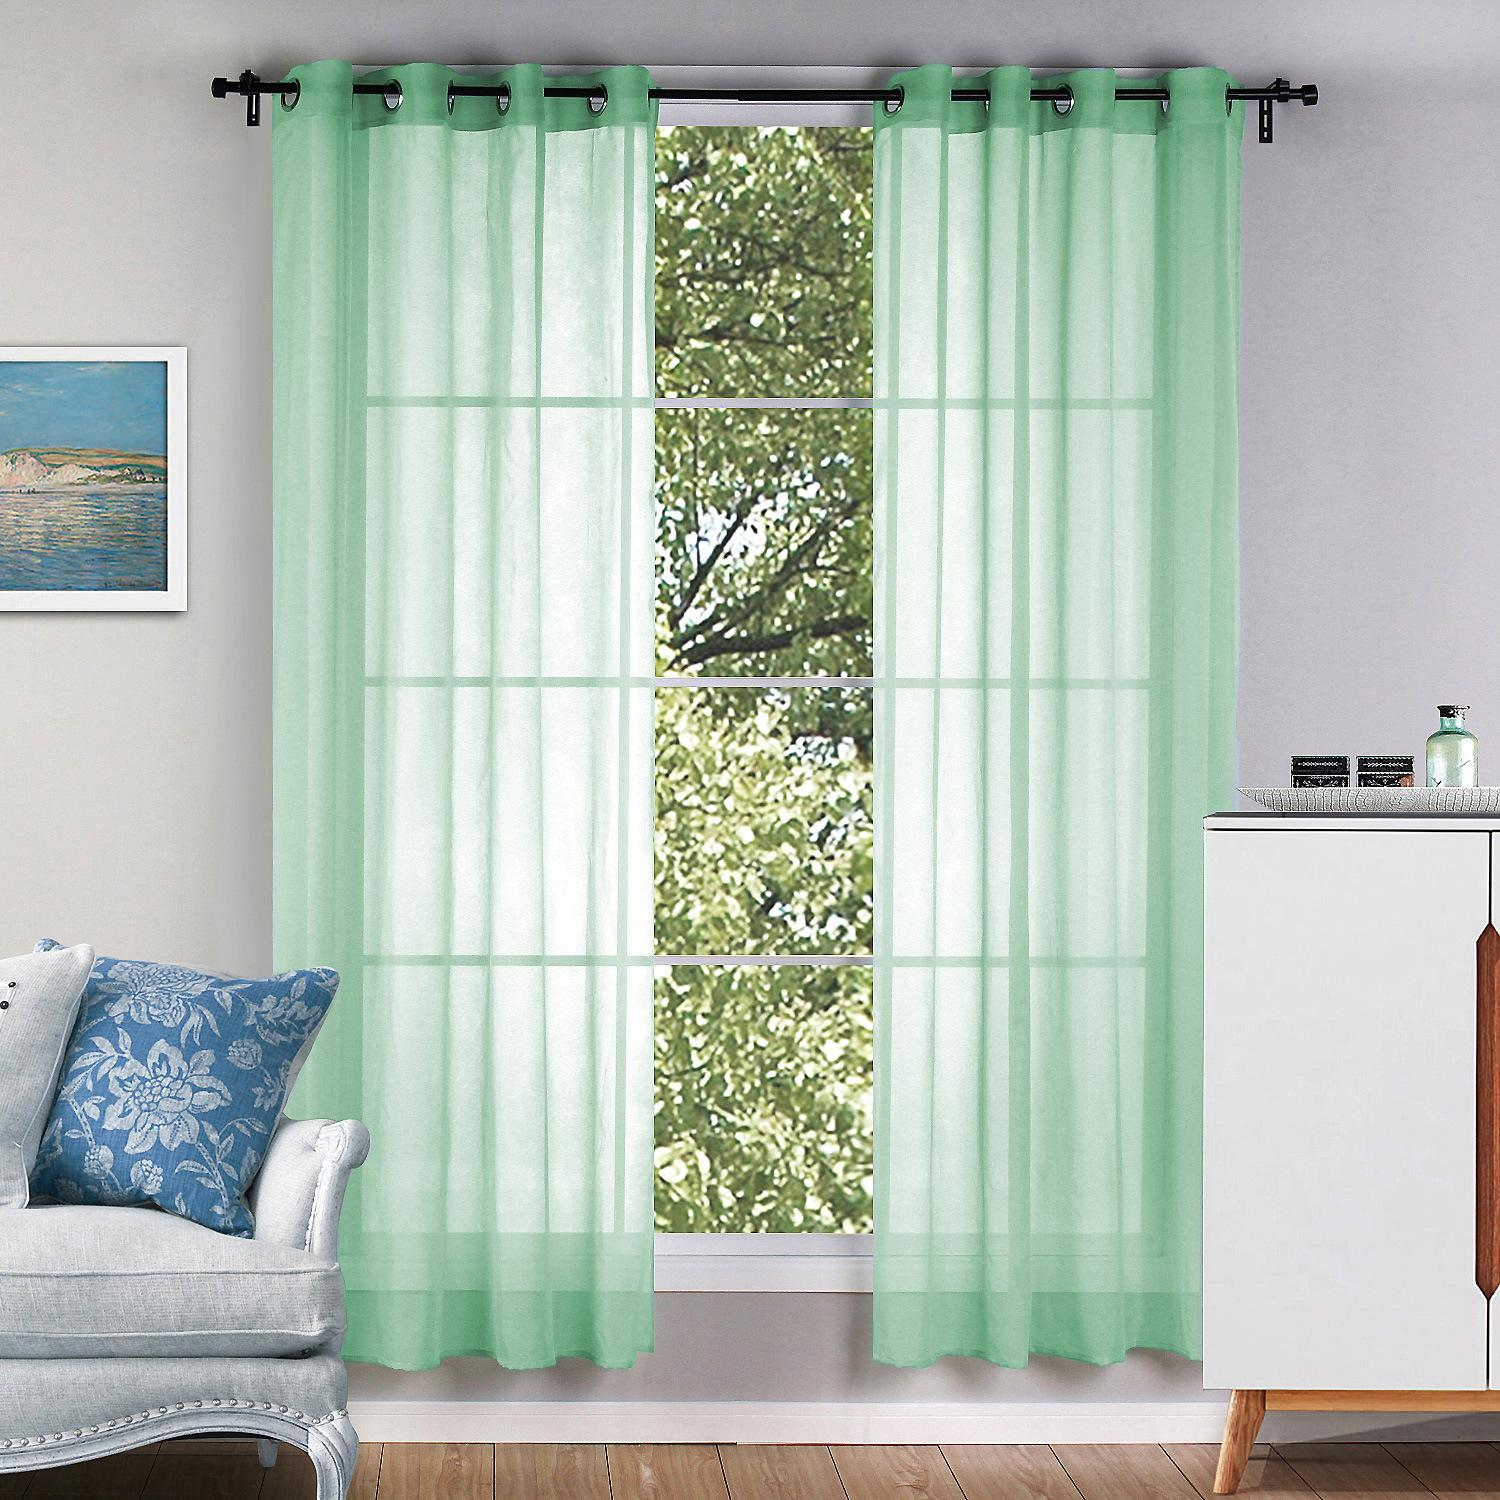 8004 Best Home Decor Finished Draps Window Blackout Sheer Curtains For  Living Room Balcony Window Screens Solid Color Curtains Curtain Sets  Curtains ...